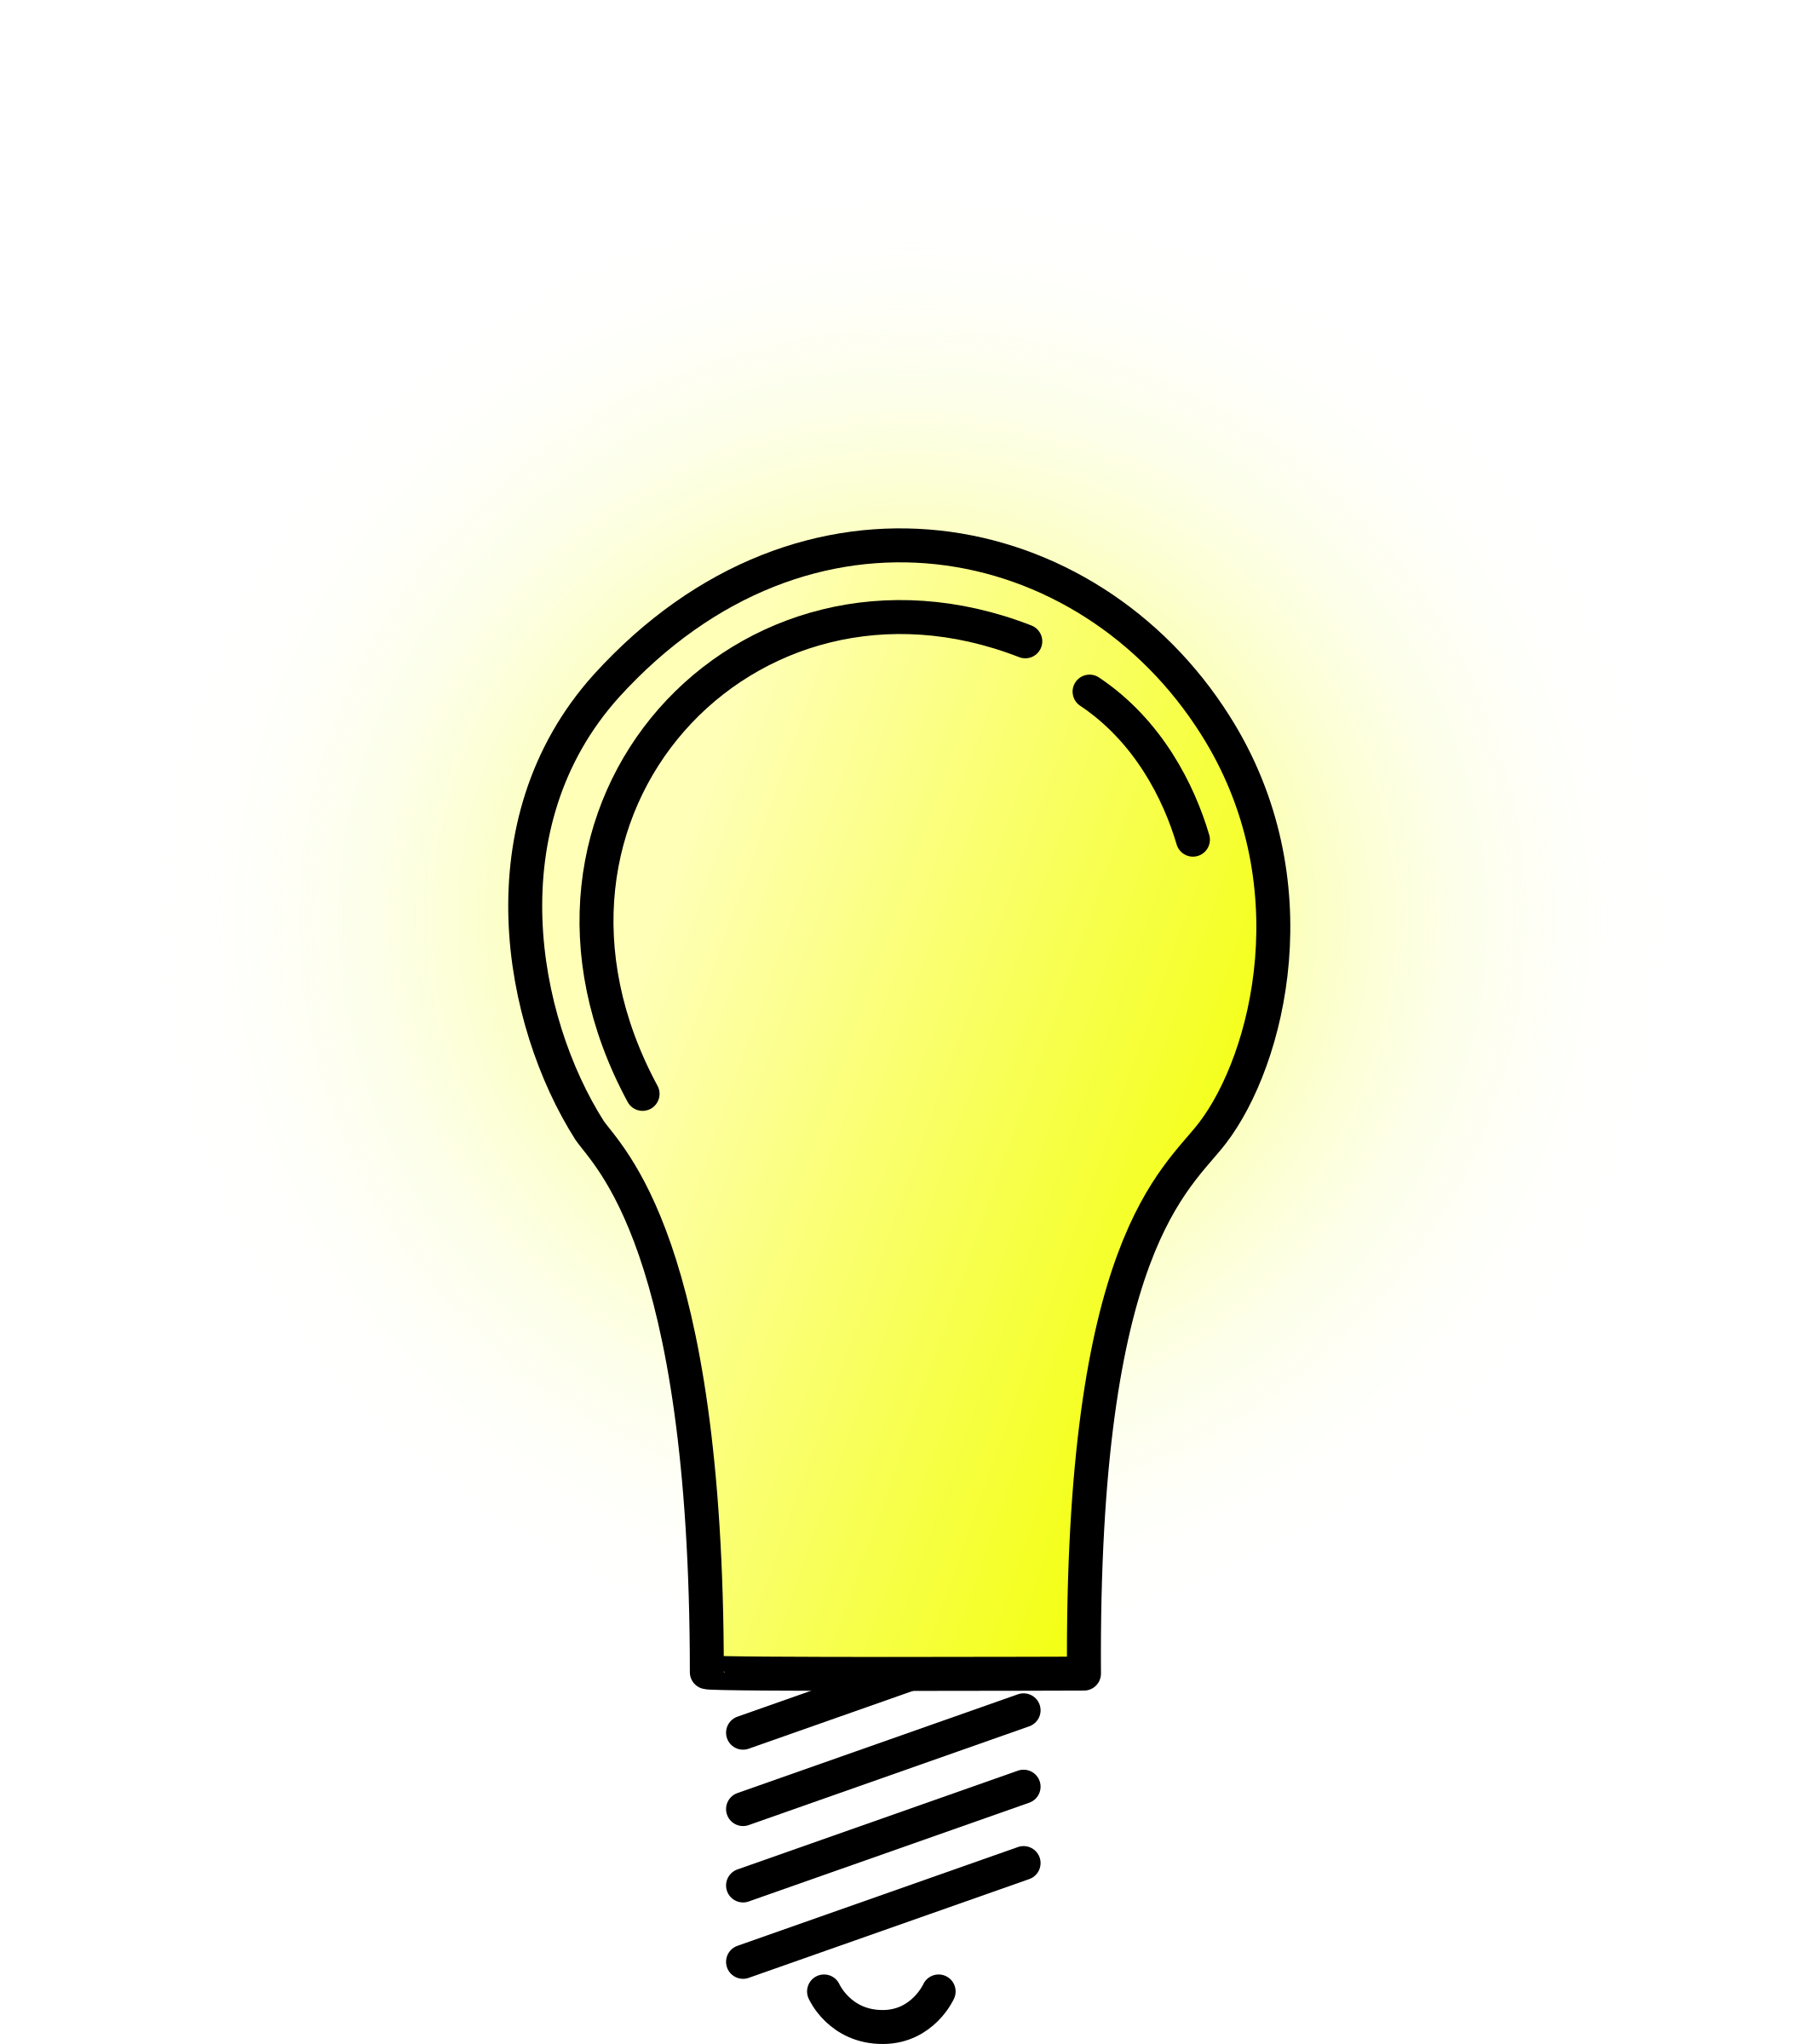 Light clipart bright idea, Light bright idea Transparent.